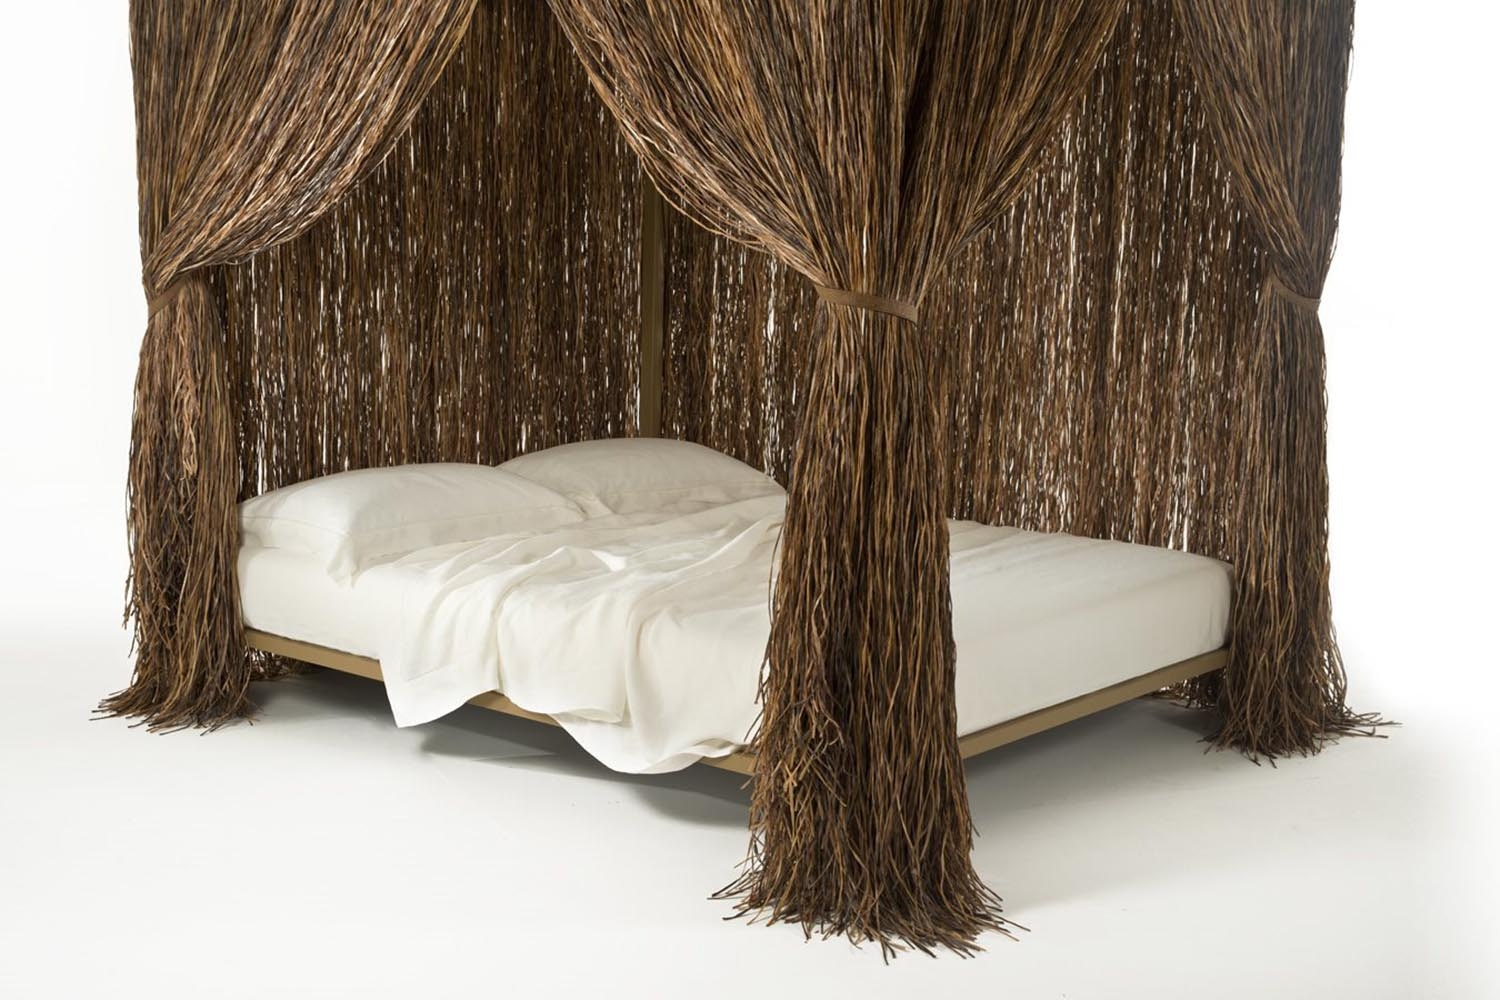 Cabana Bed by F. e H. Campana for Edra